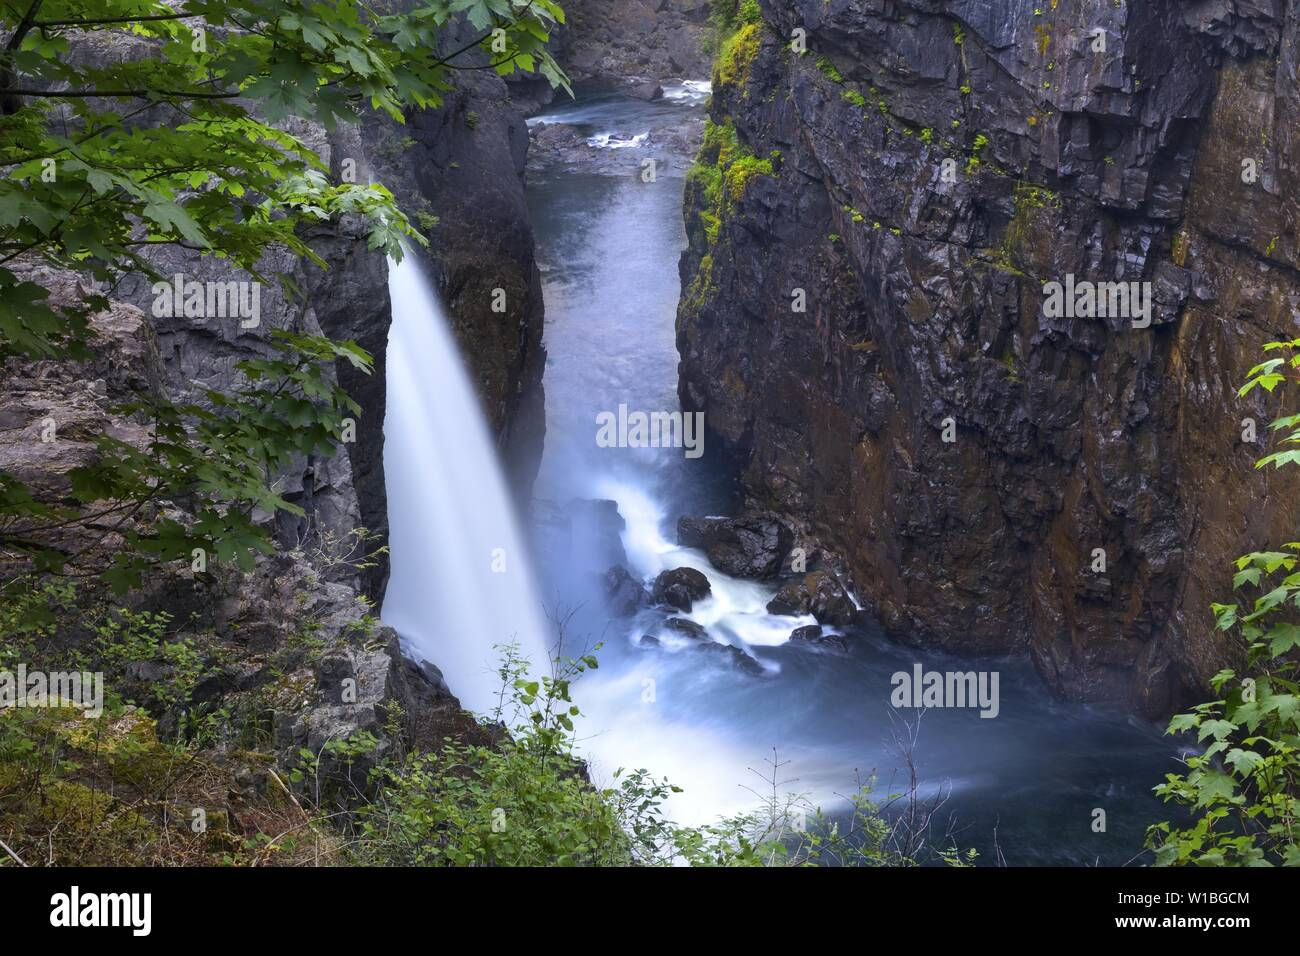 Scenic Landscape View of High Waterfall Water Stream Cascade Flowing to Rock Canyon in Elk Falls Provincial Nature Park on Vancouver Island Stock Photo